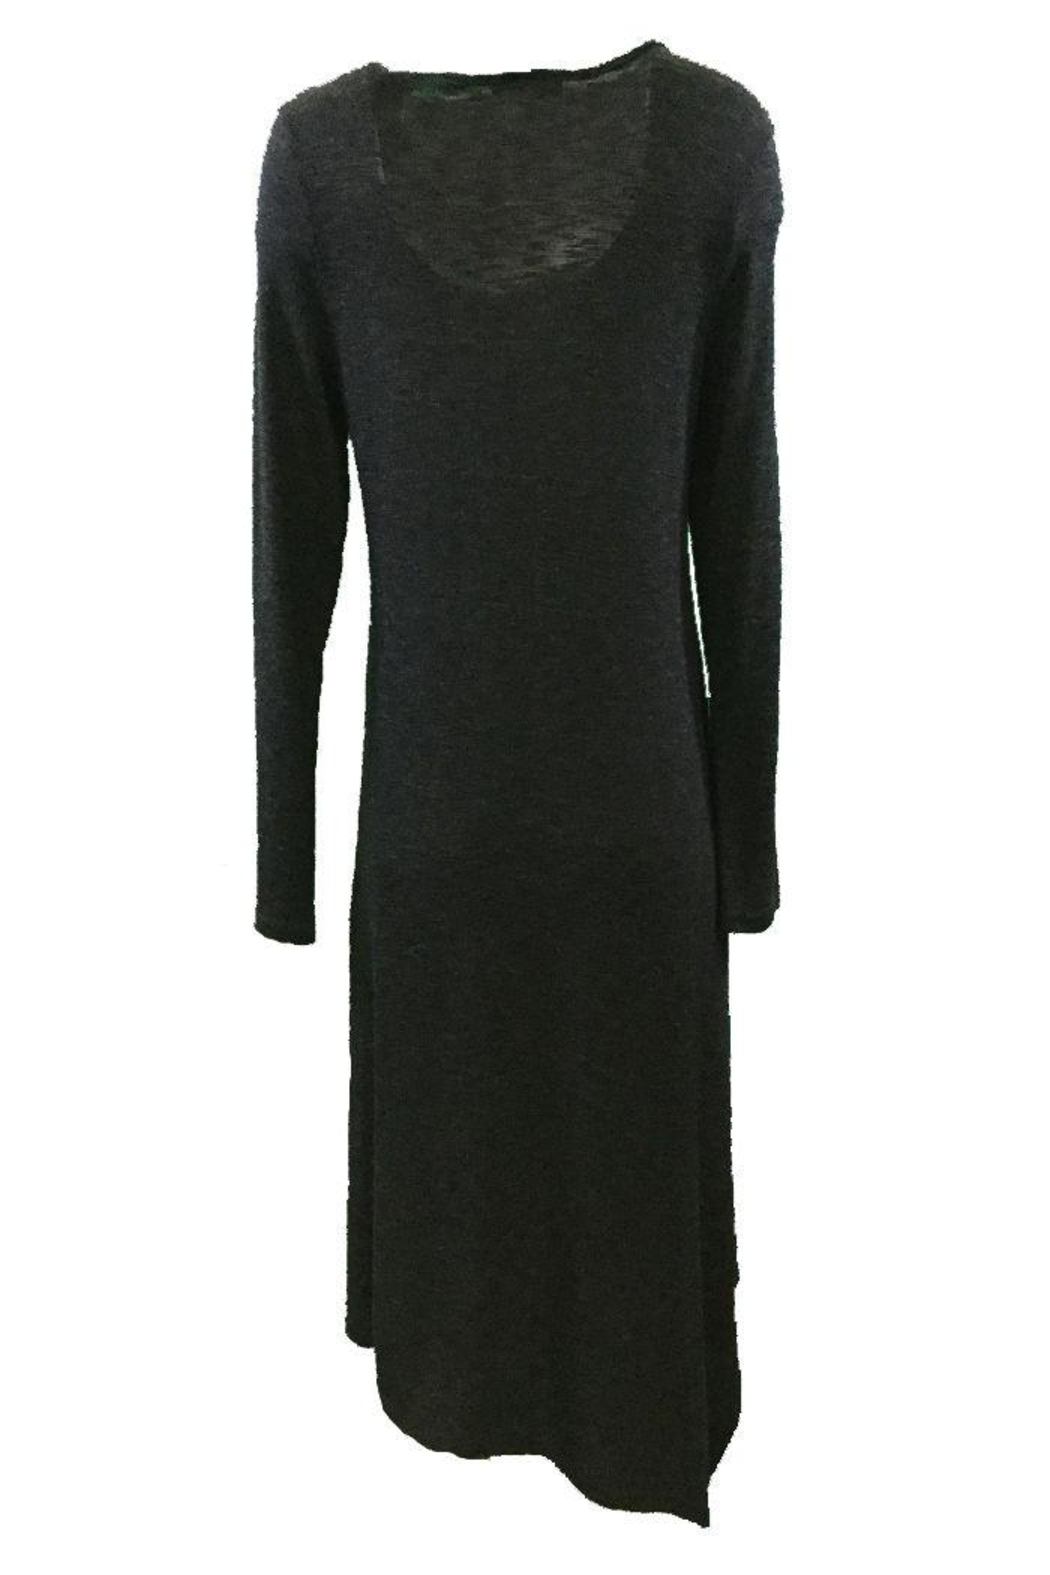 Michael Tyler Collections Black Charcoal Dress - Side Cropped Image